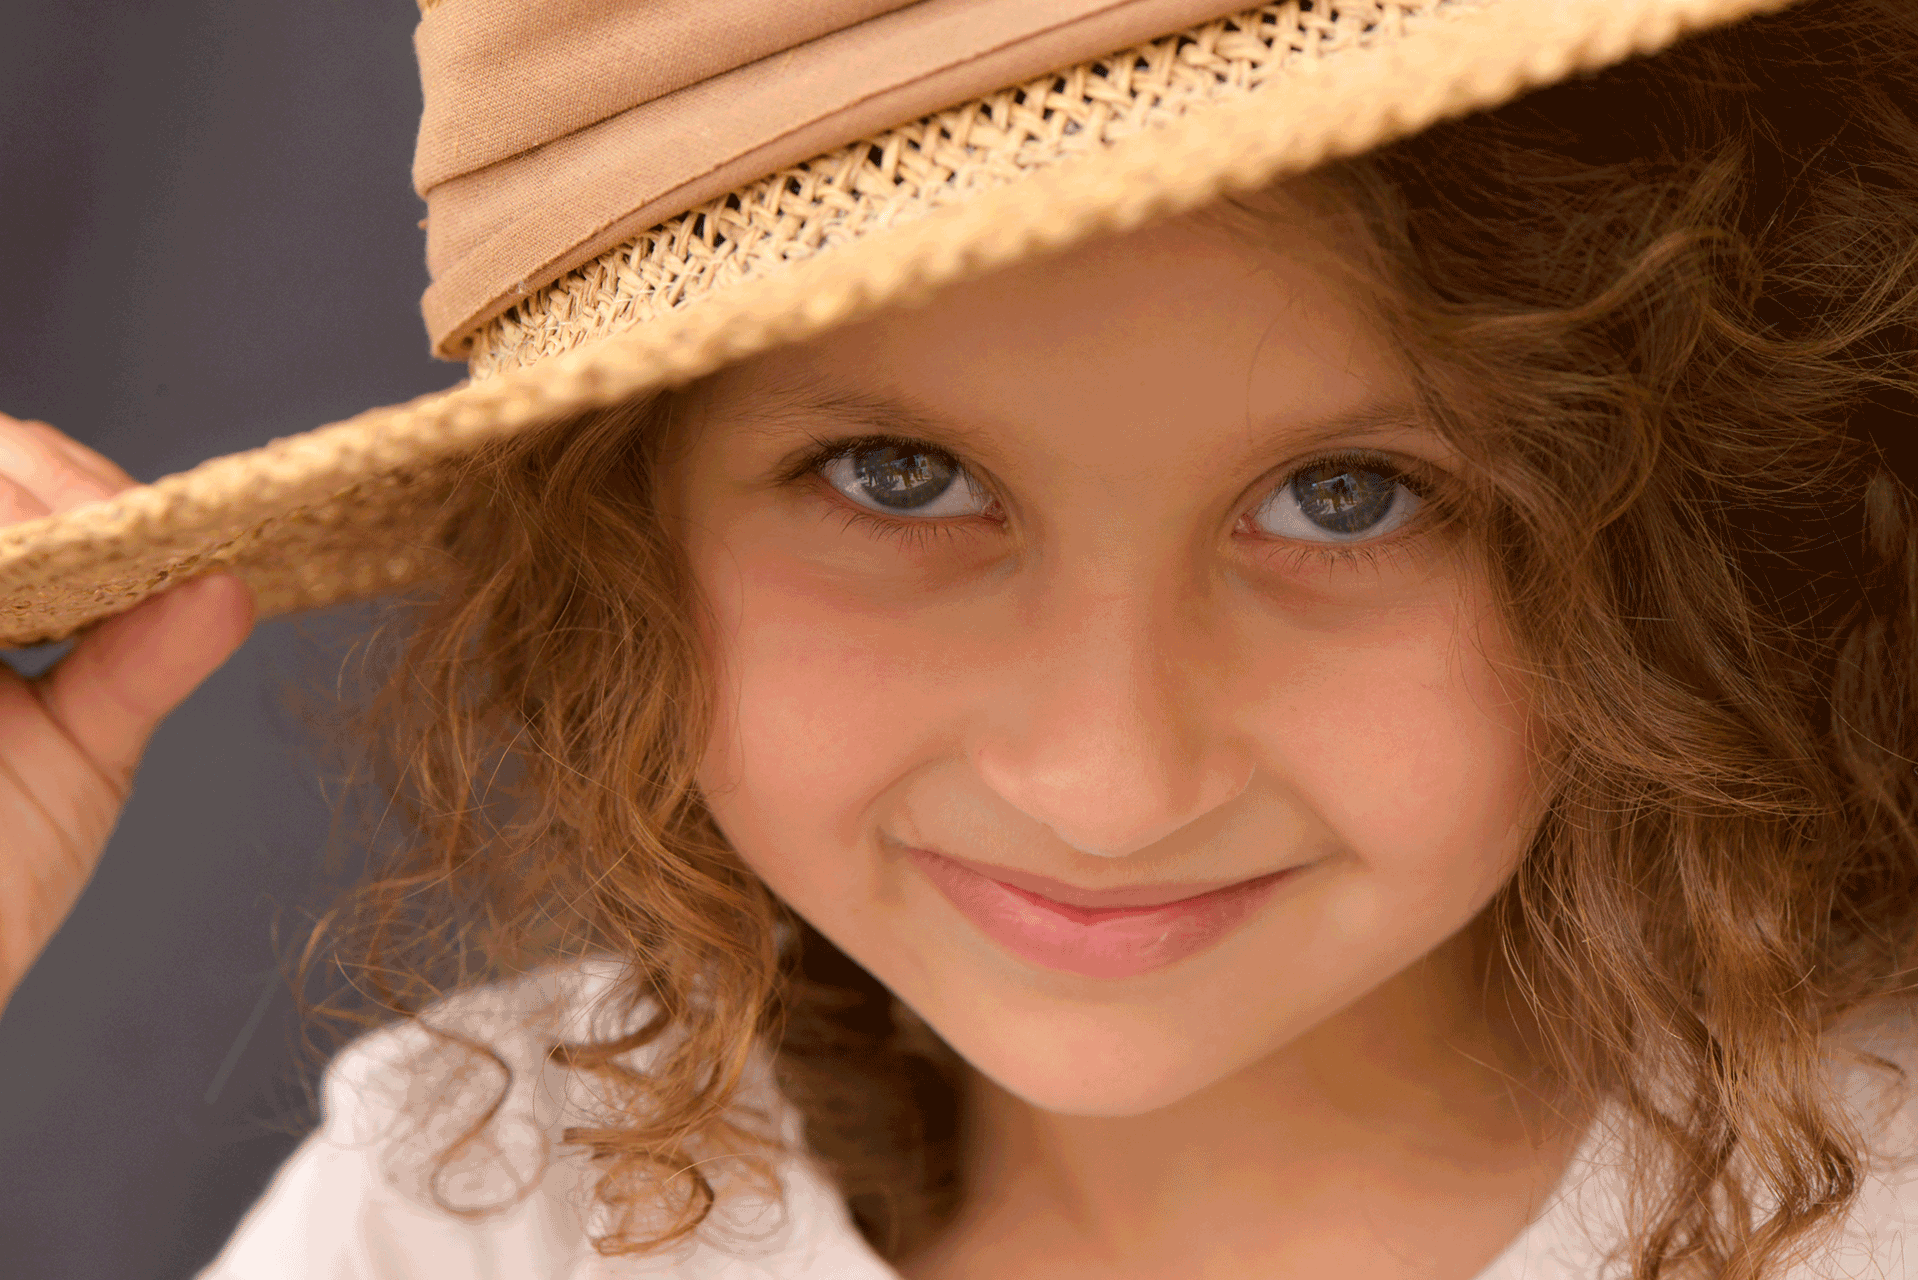 photographe-ile-de-france-portrait-photo-enfant-hauts-de-seine